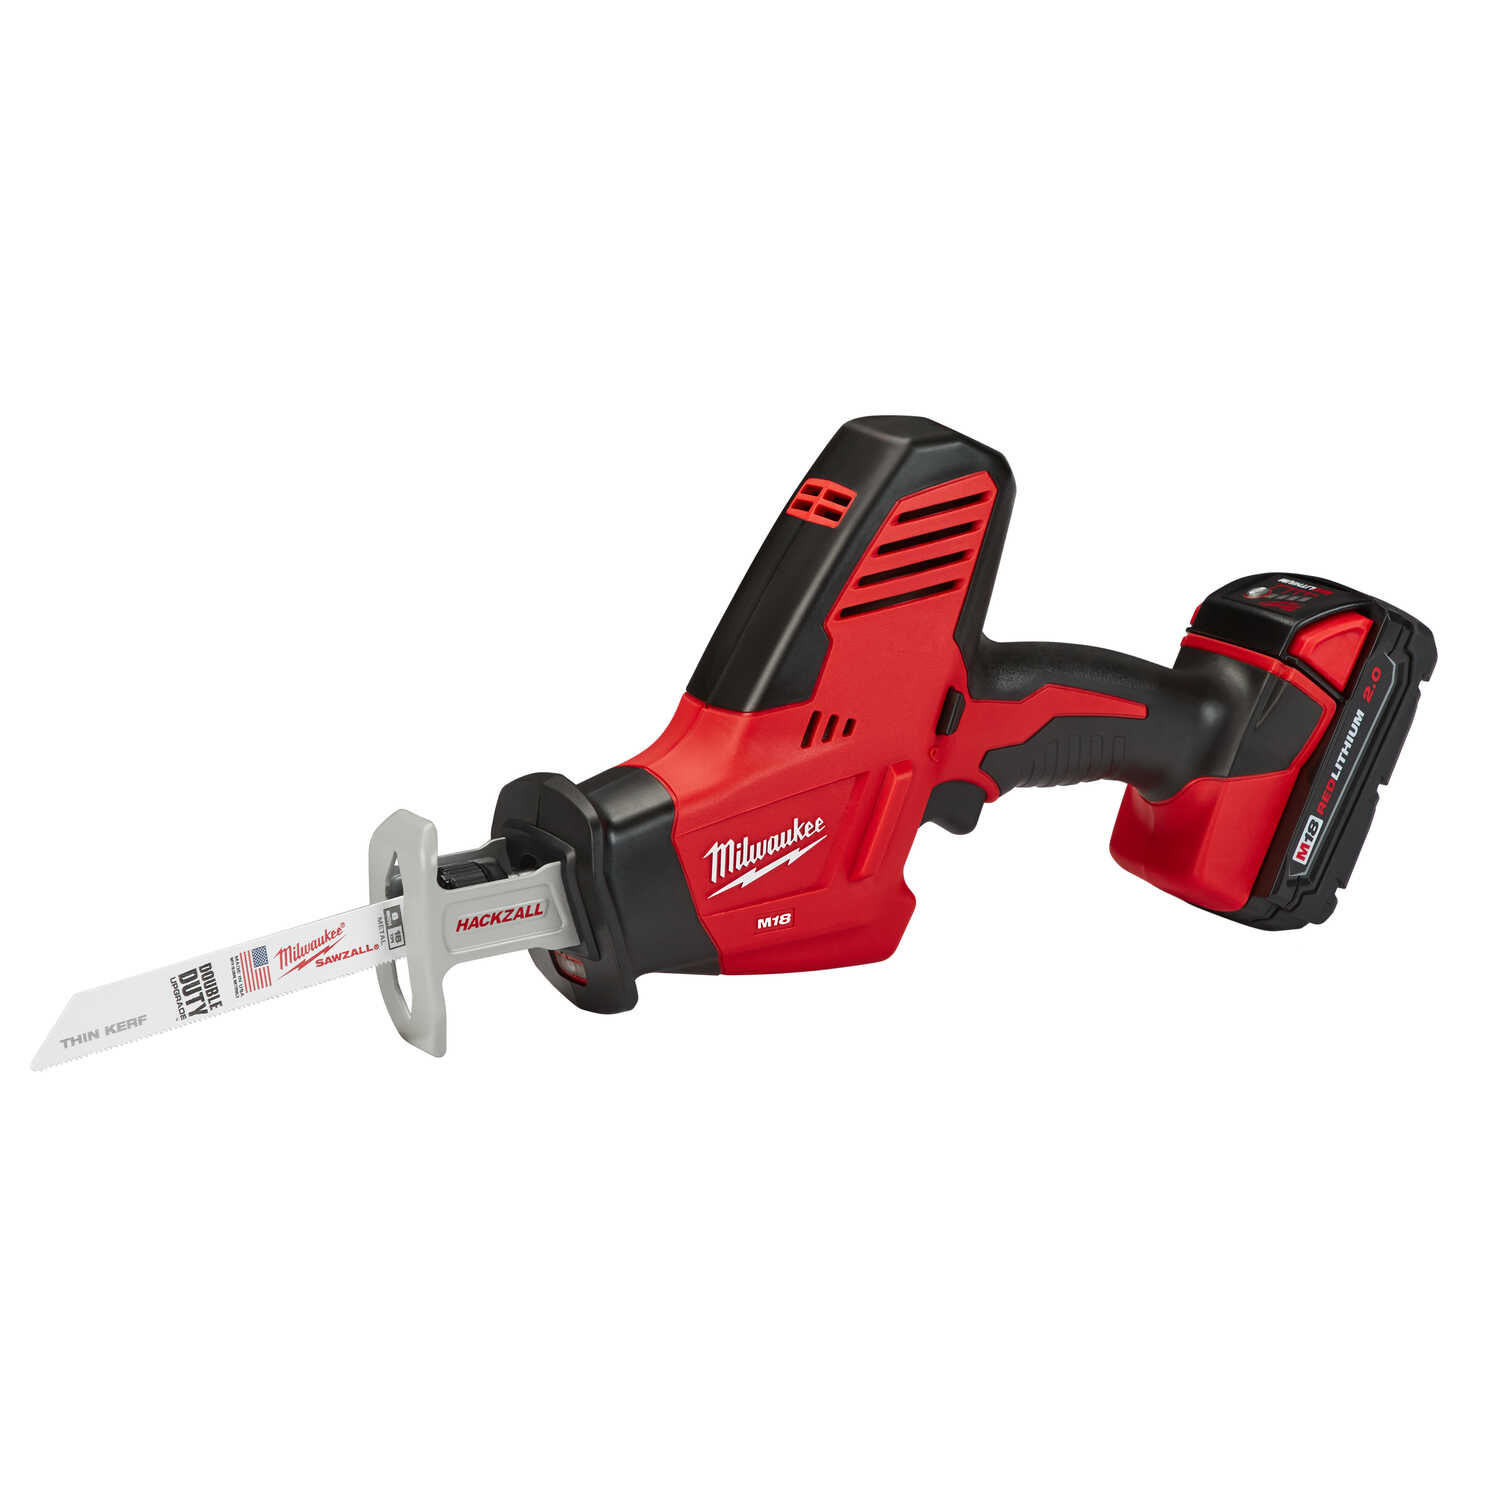 Milwaukee  M18 HACKZALL  Cordless  3/4 in. Reciprocating Saw  Kit 18 volt 3000 spm